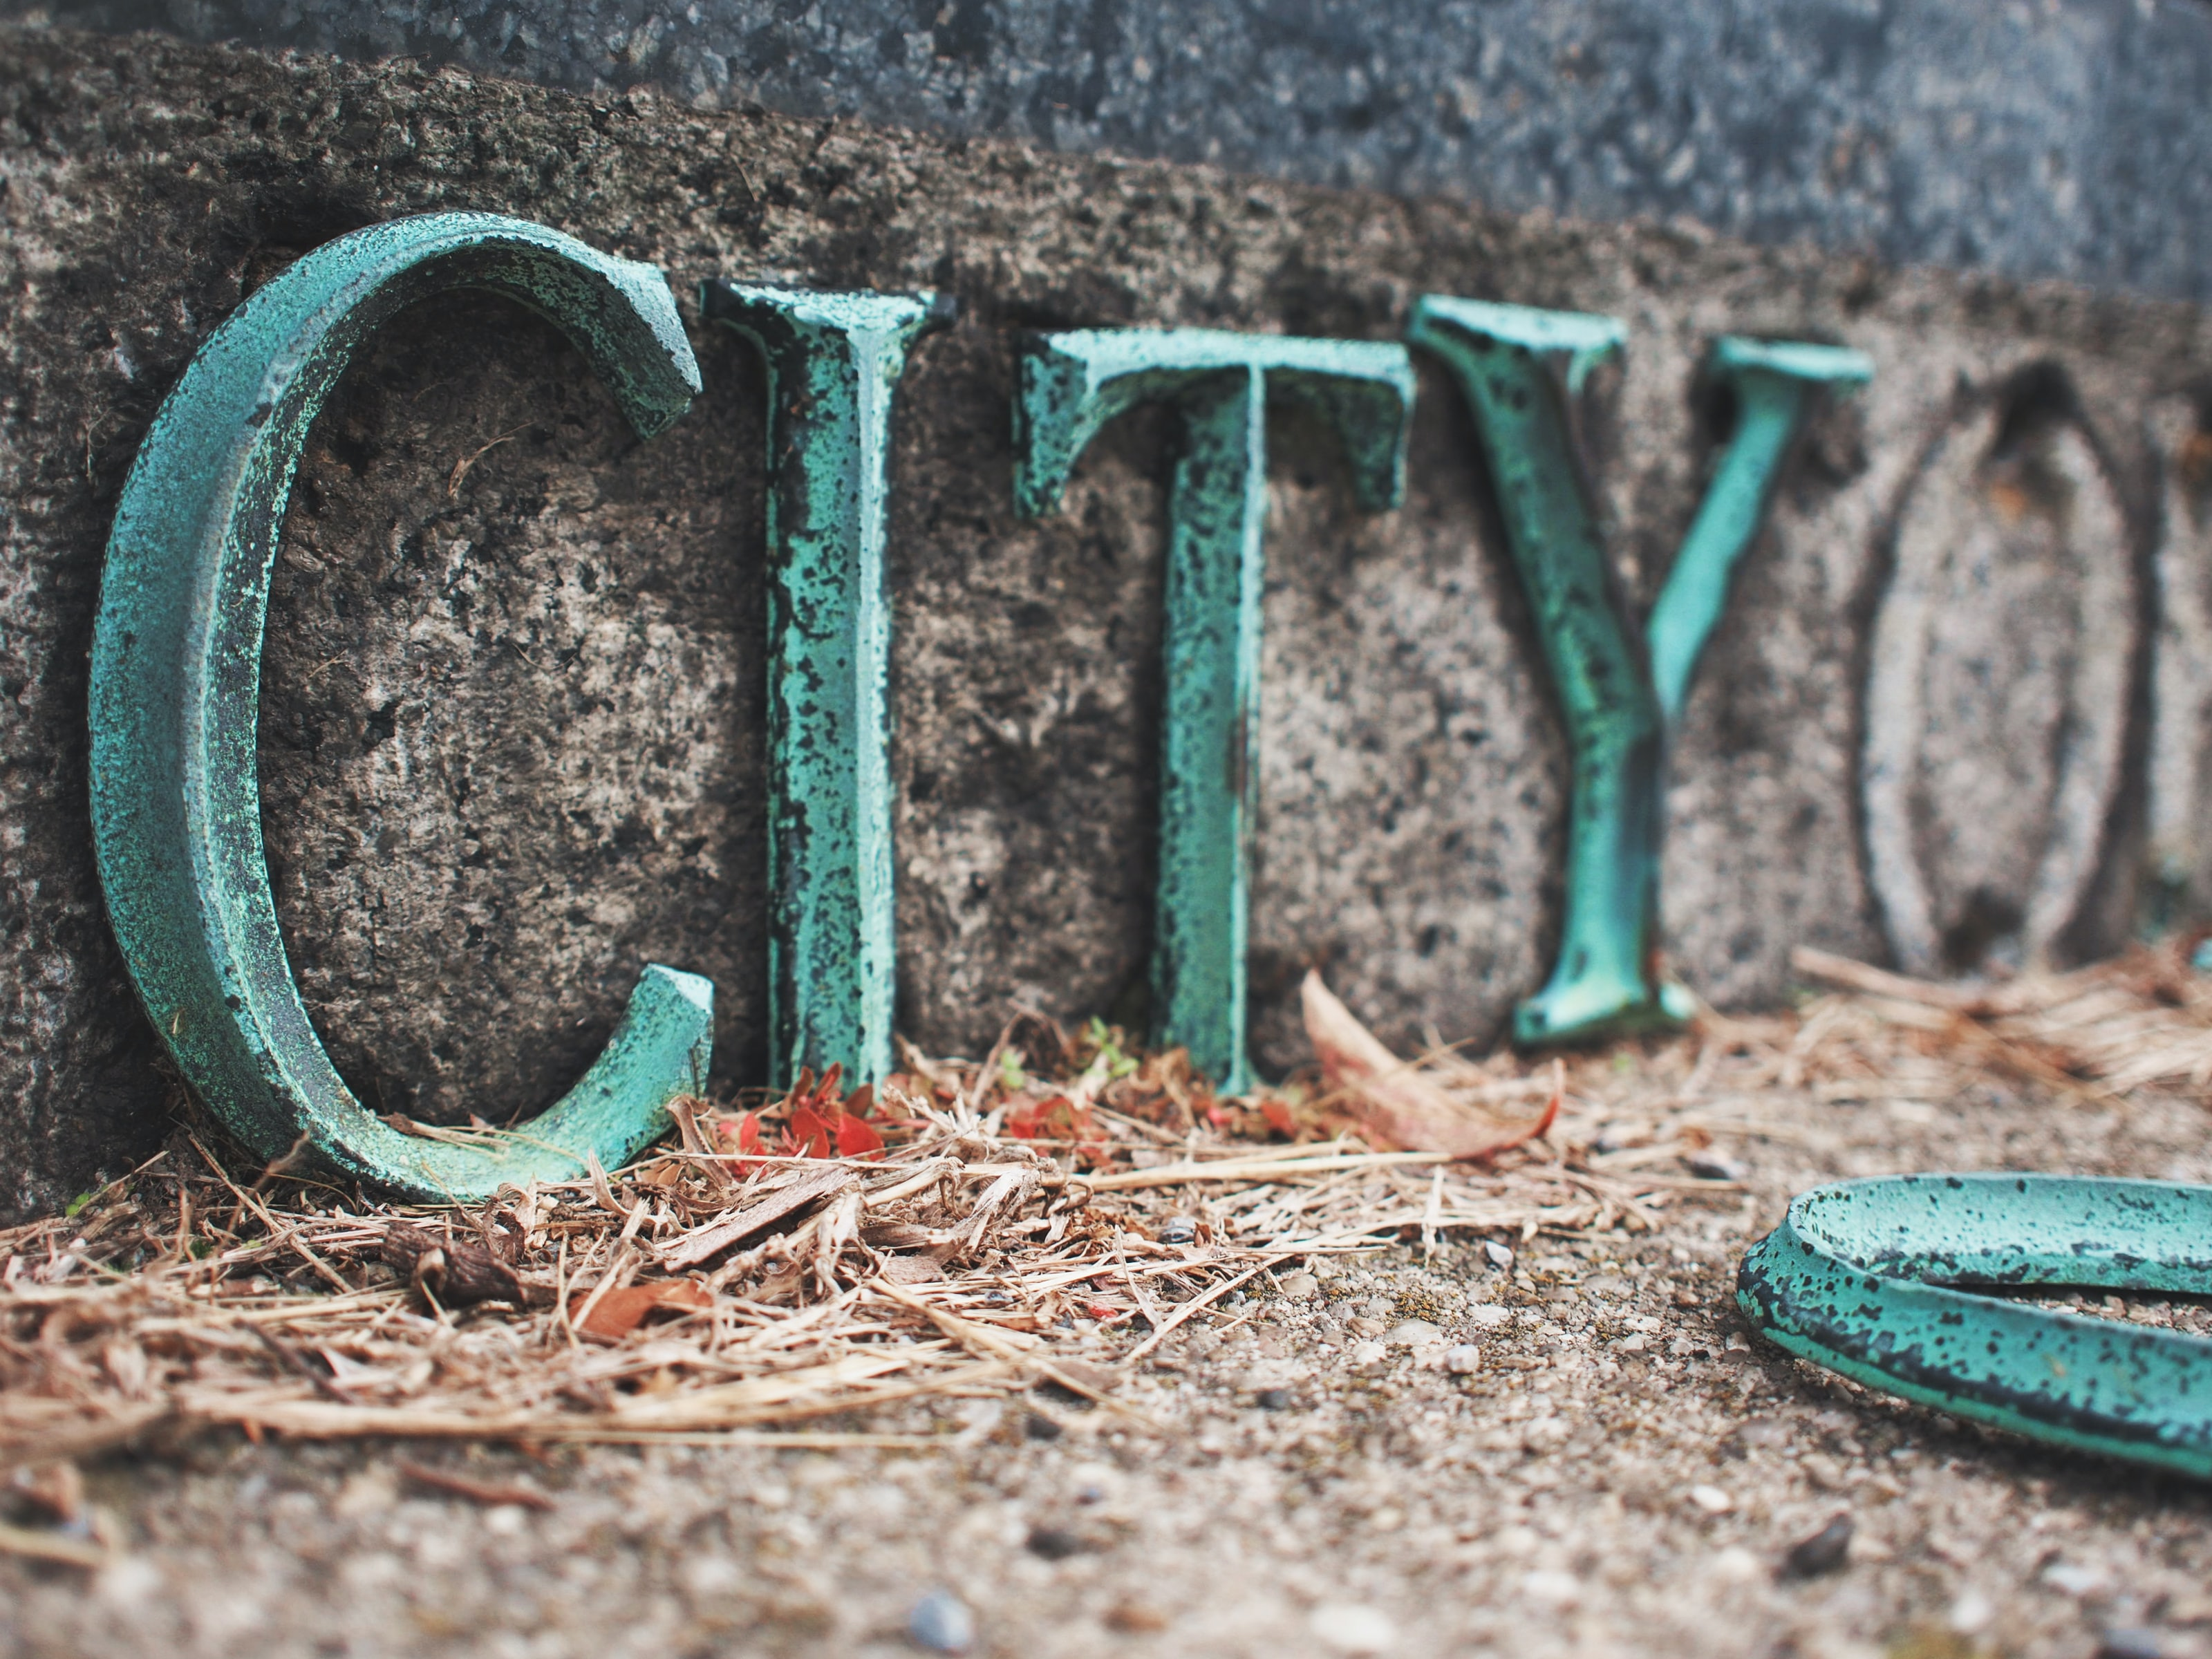 teal and black concrete city freestanding letter decor